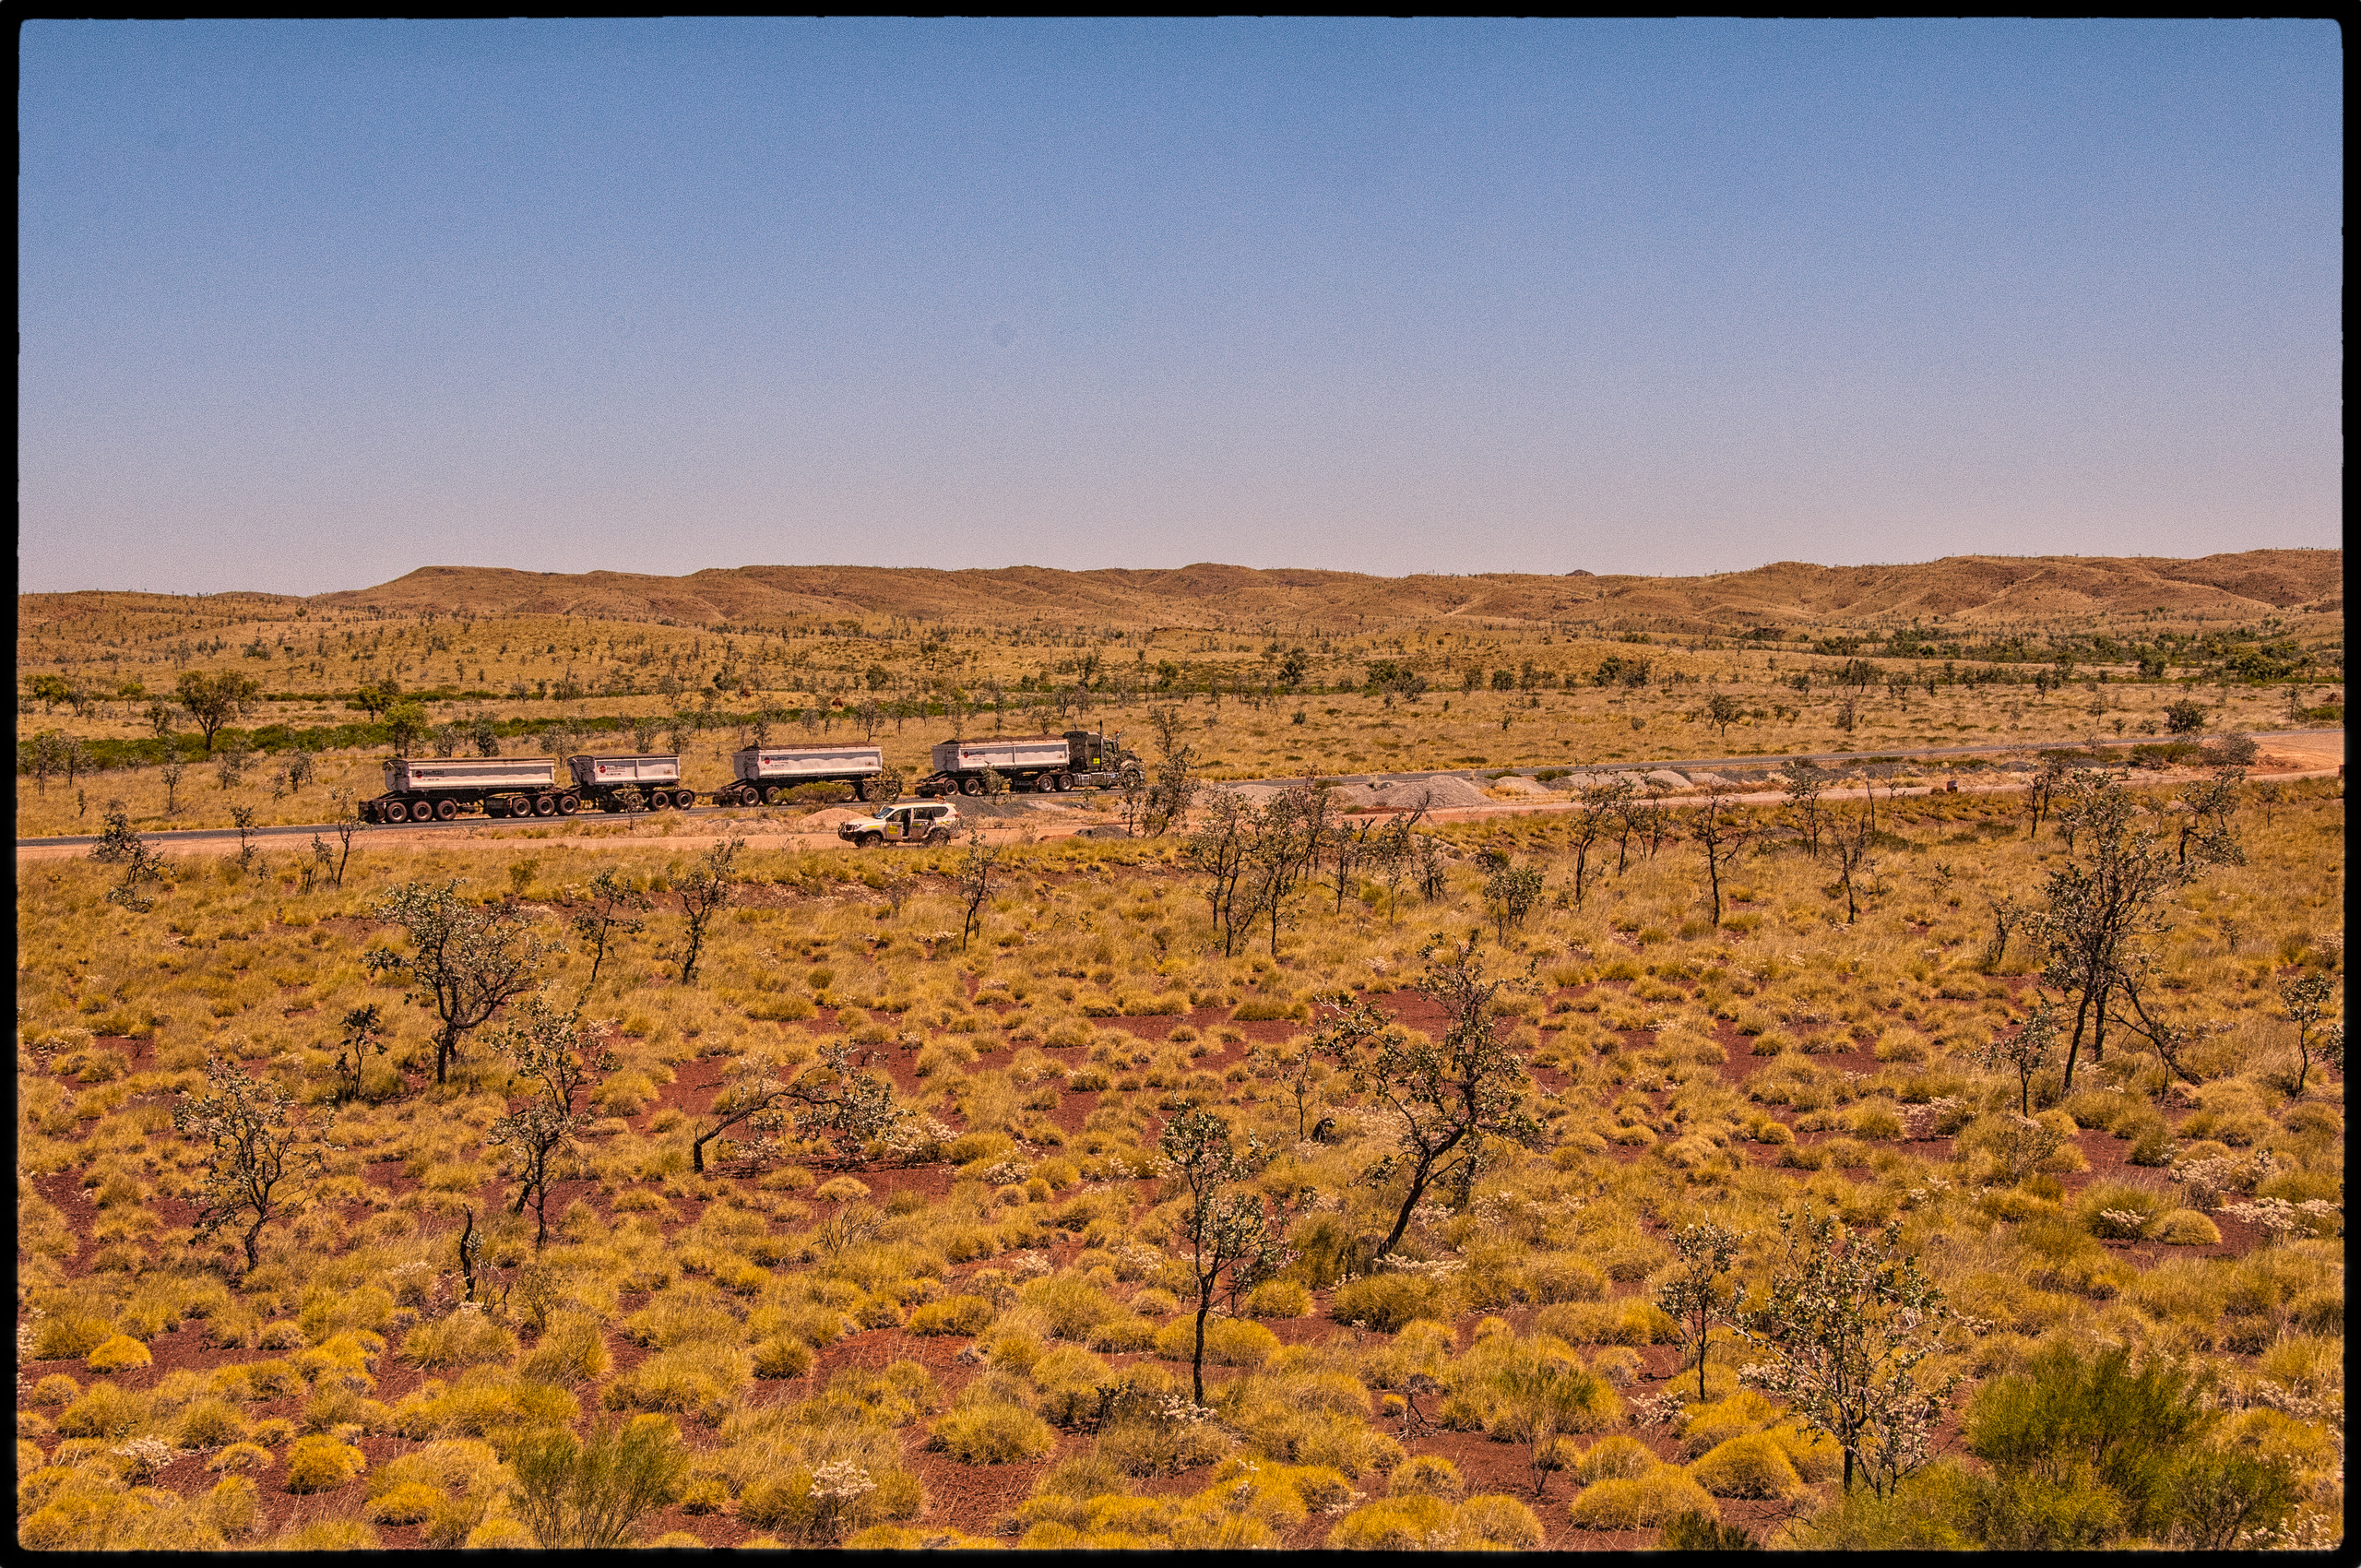 Road train passing our car